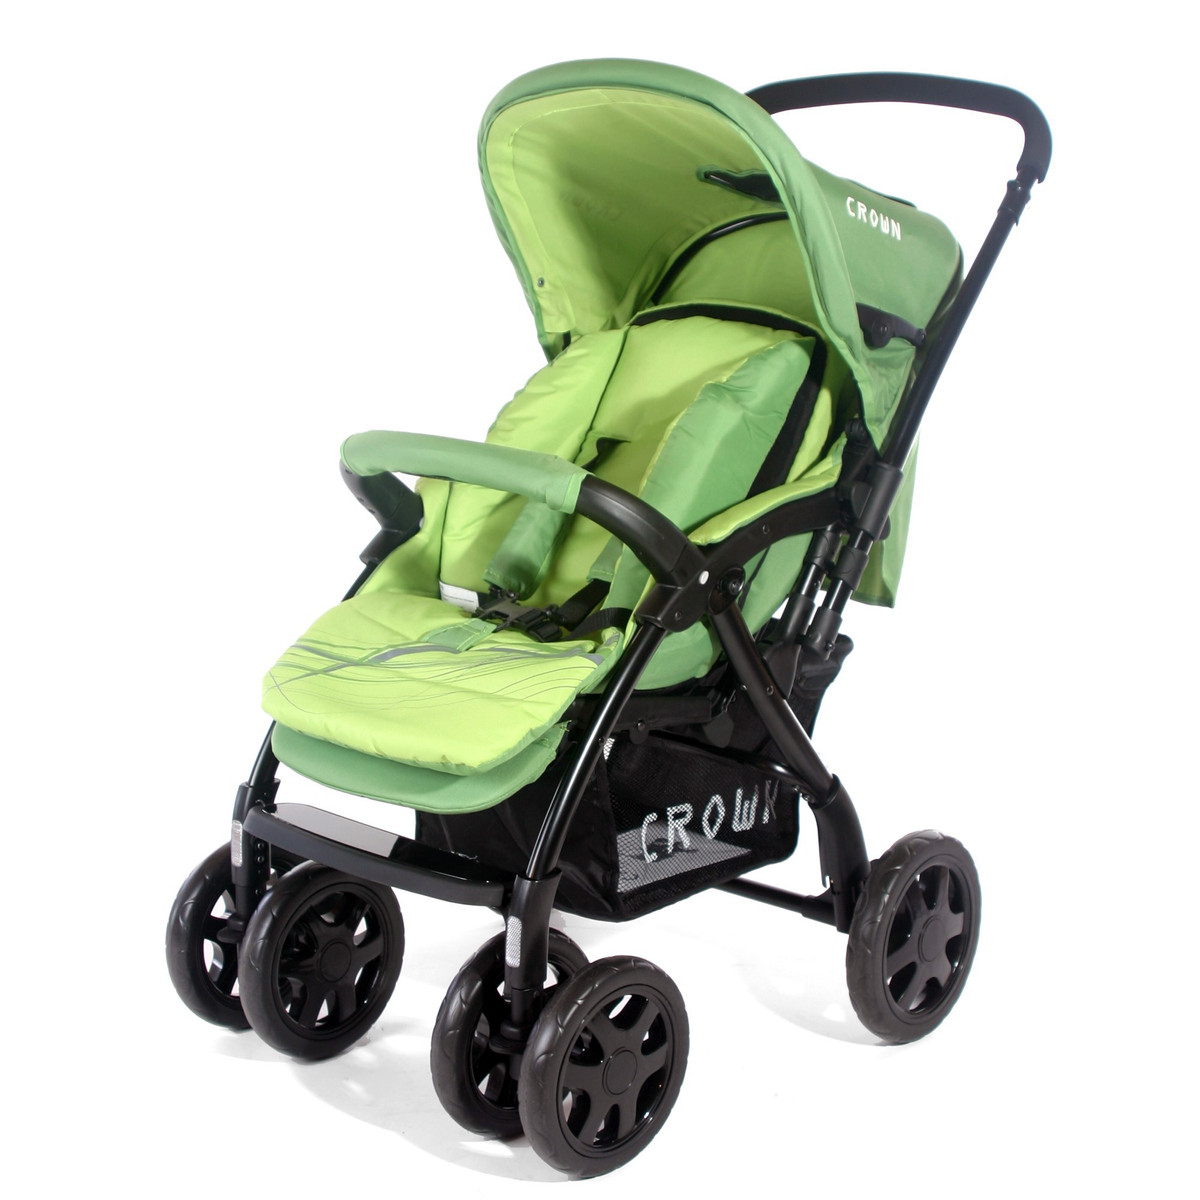 B-WARE ST528 - CROWN Kinderwagen Buggy Sport 4-Rad - DUAL WAY Farbe: GREEN